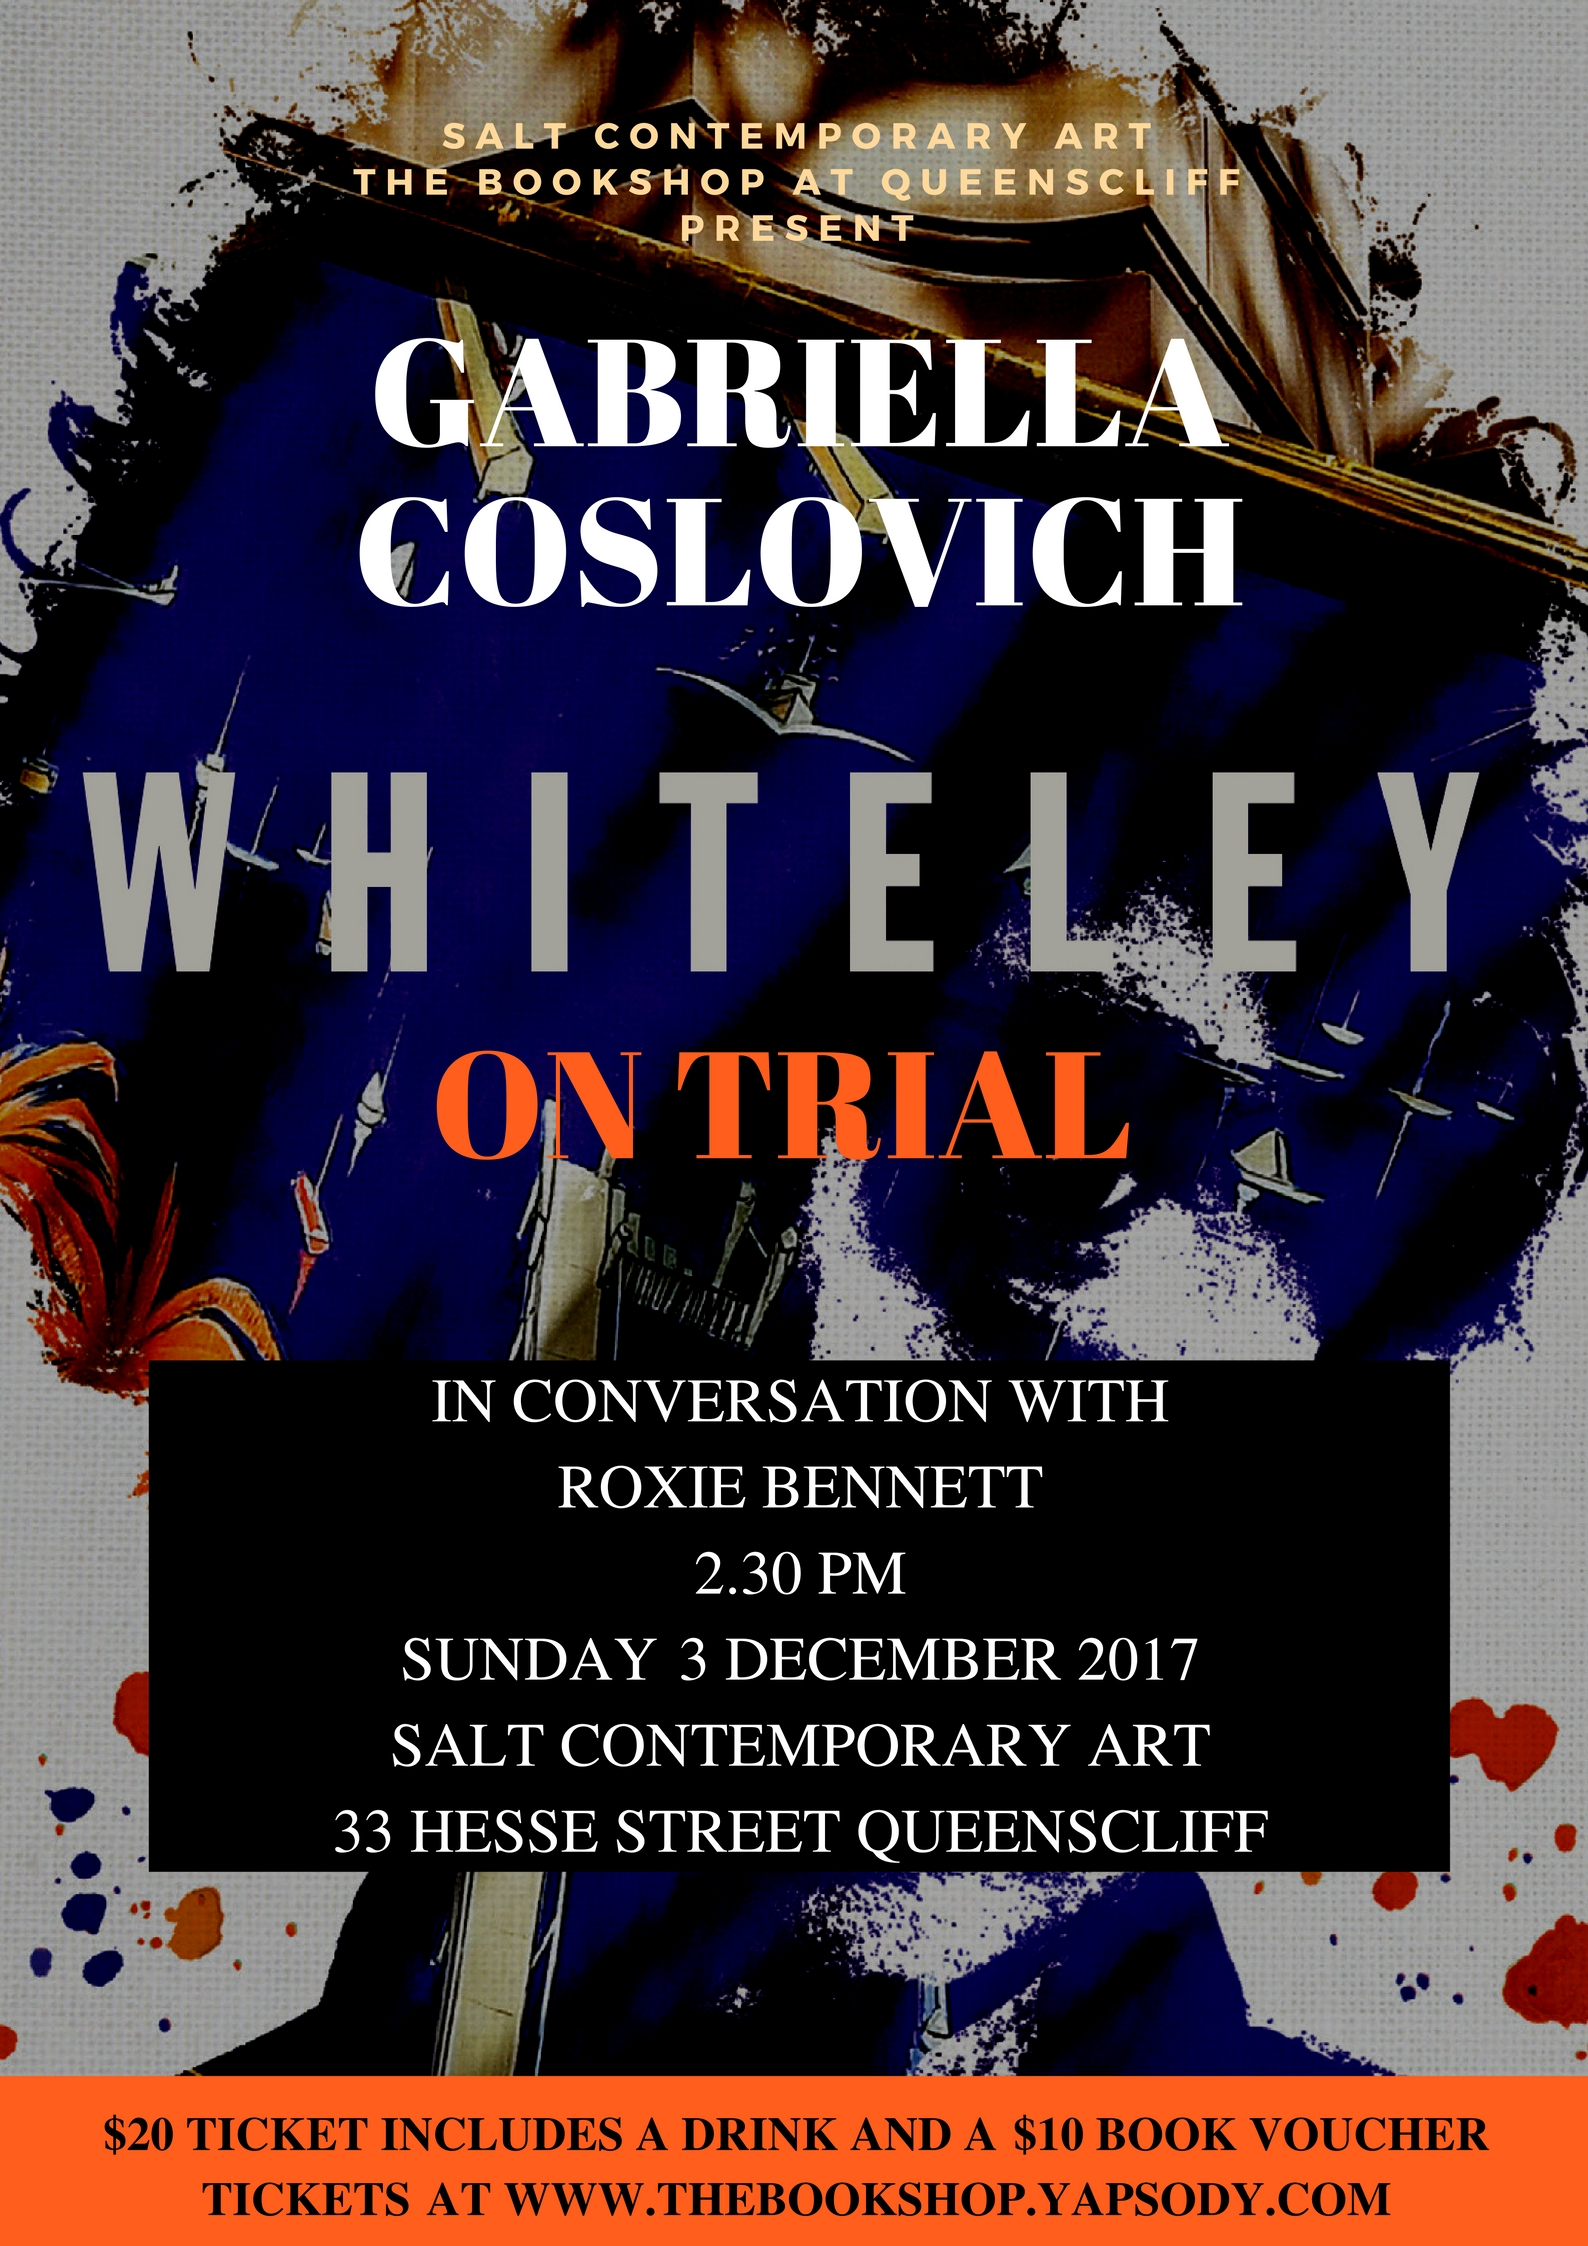 Whiteley on Trial with Gabriella Coslovich